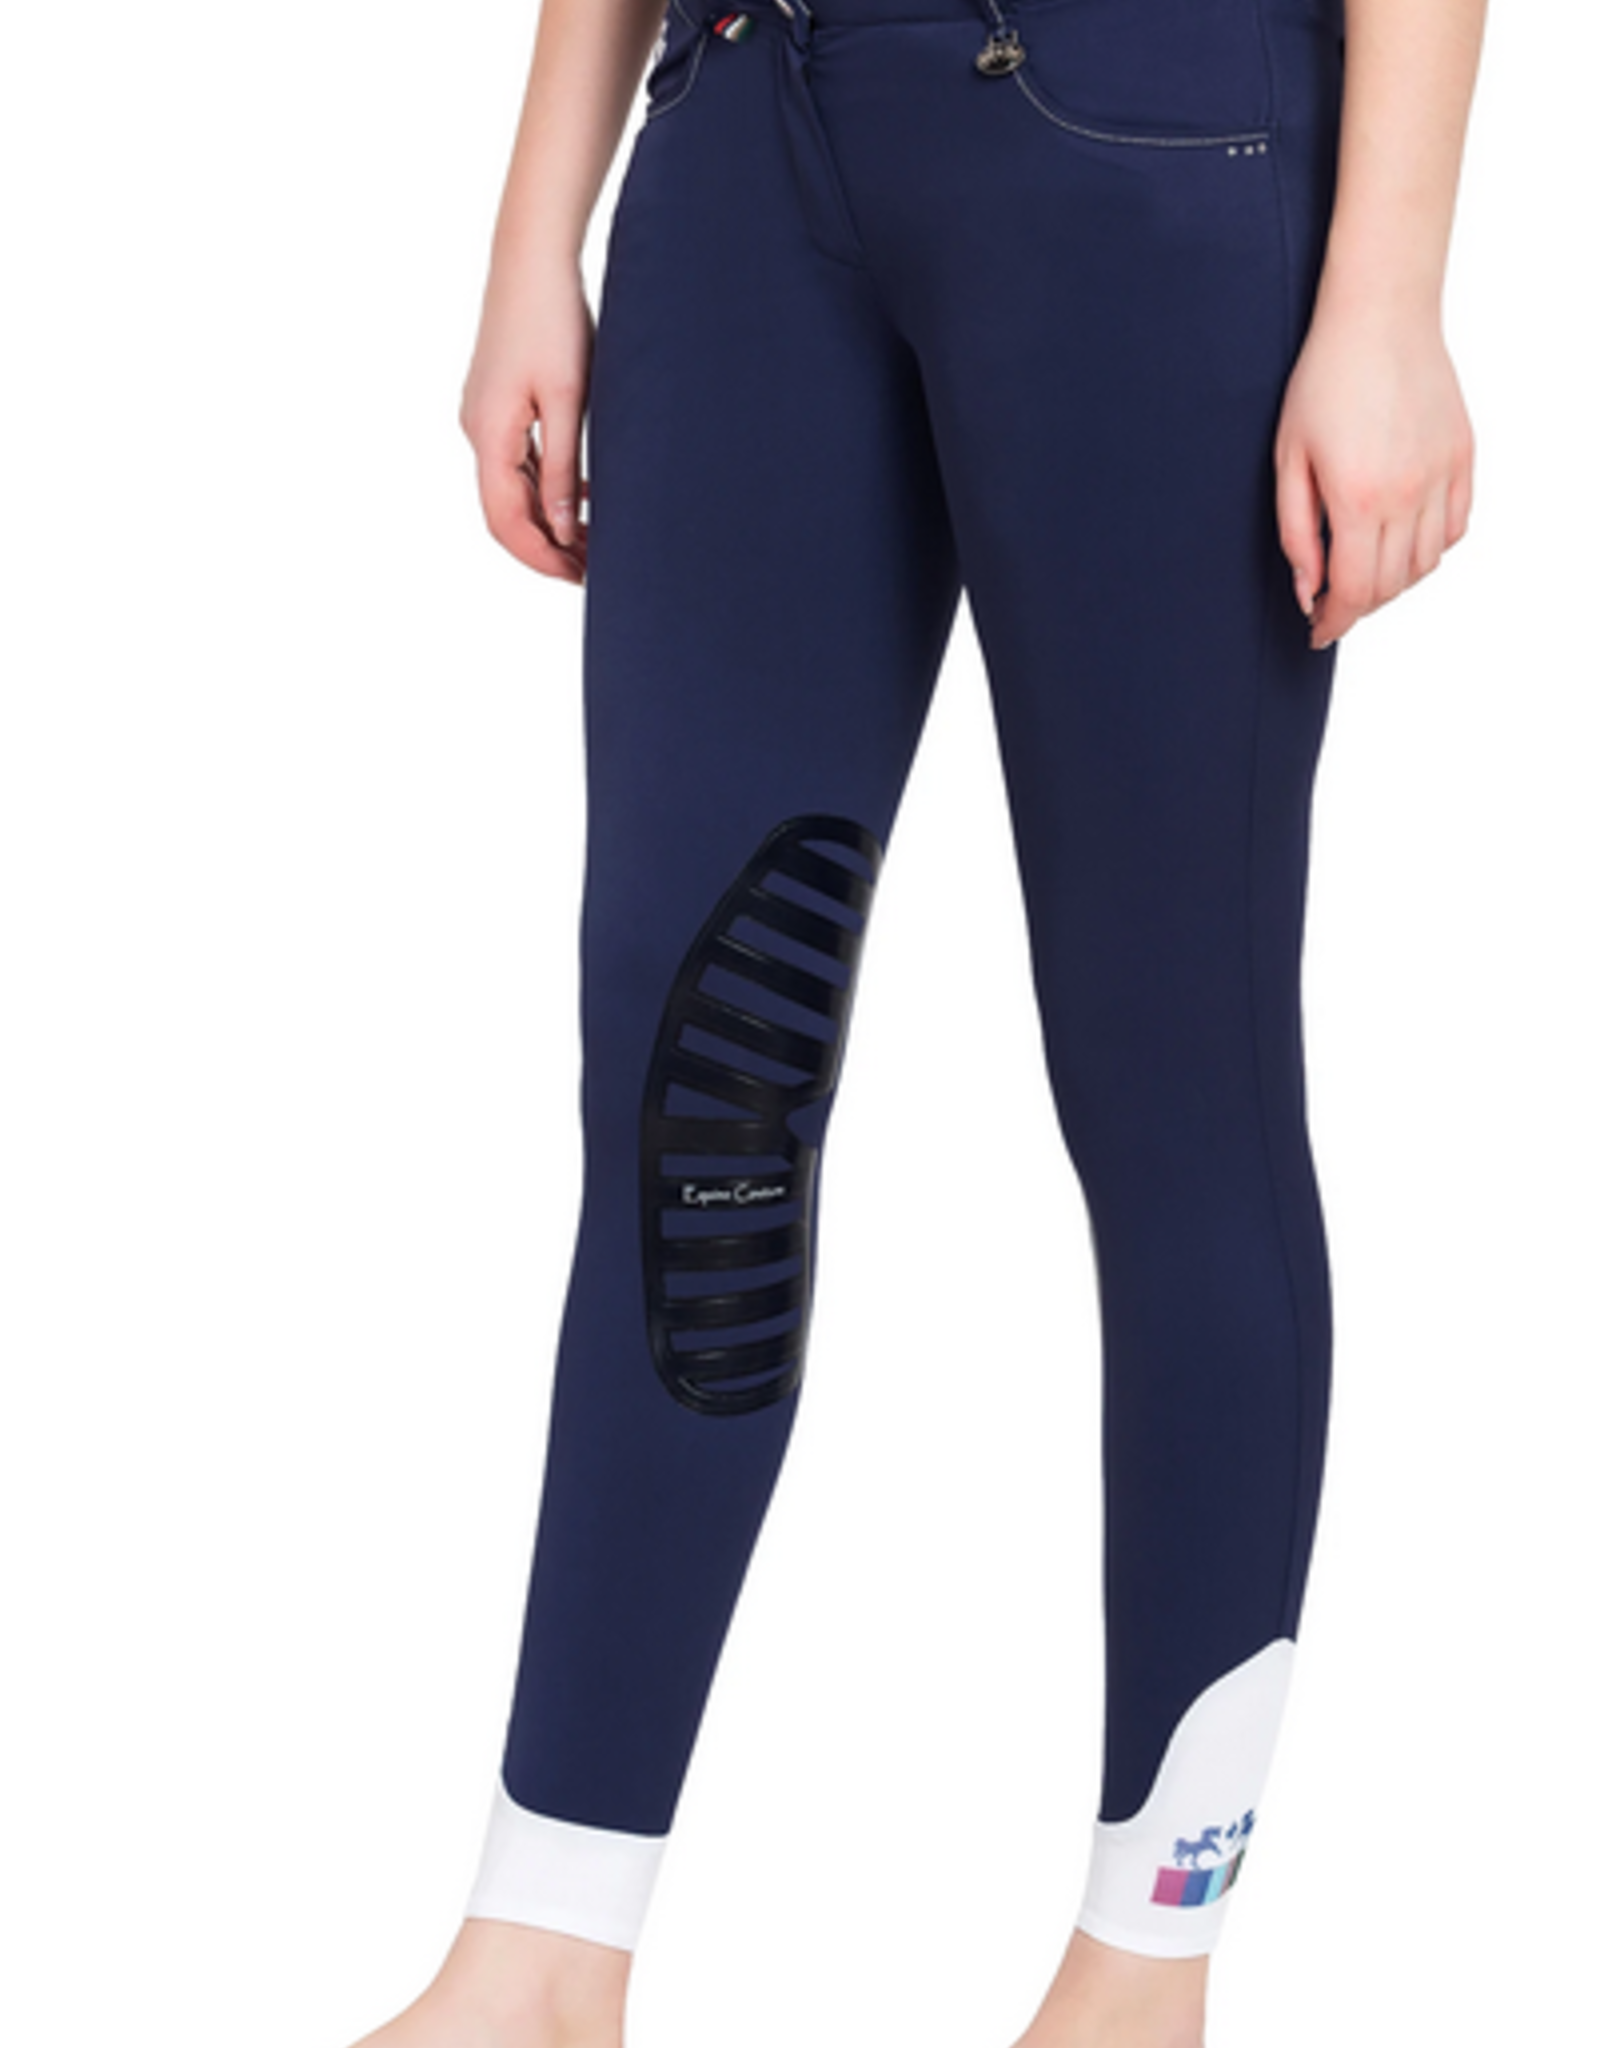 Equine Couture Darsy Ladies' Silicone Knee Patch Breech